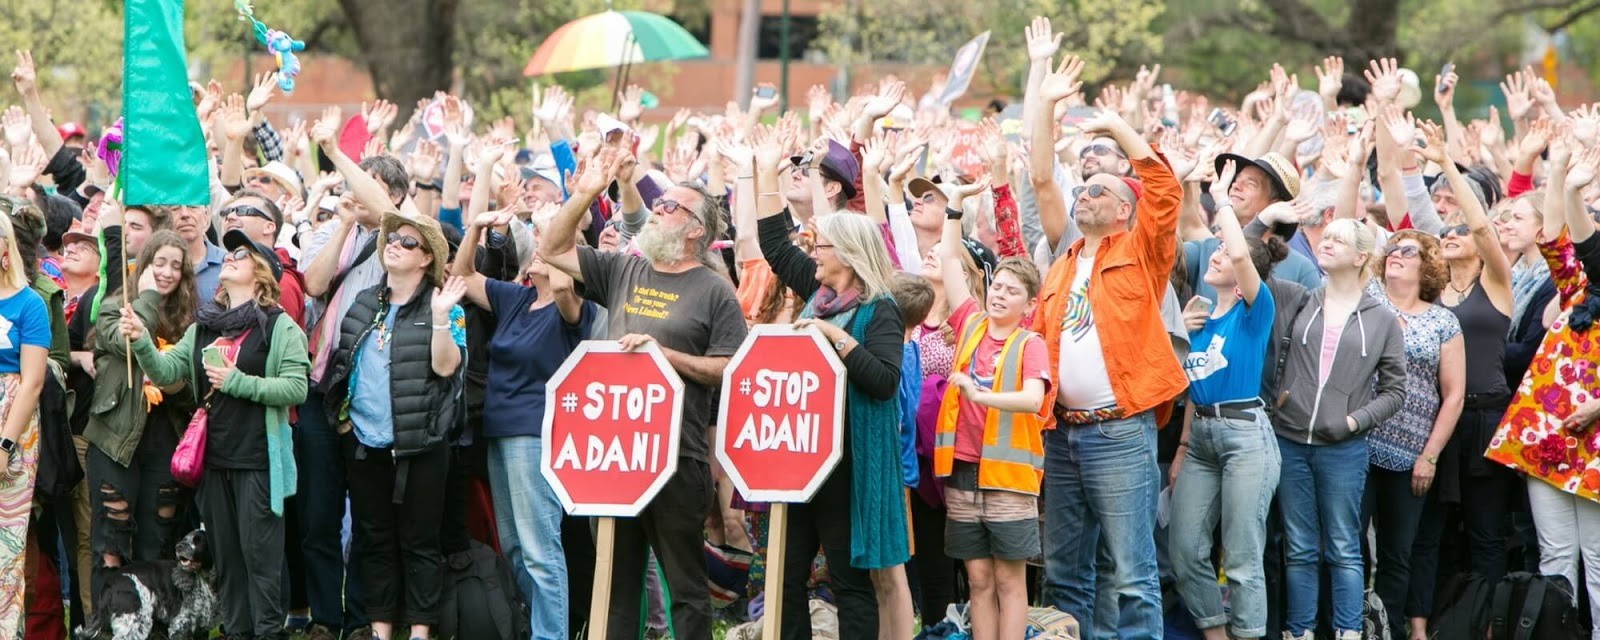 If you're already taking action, have a conservation to stop Adani